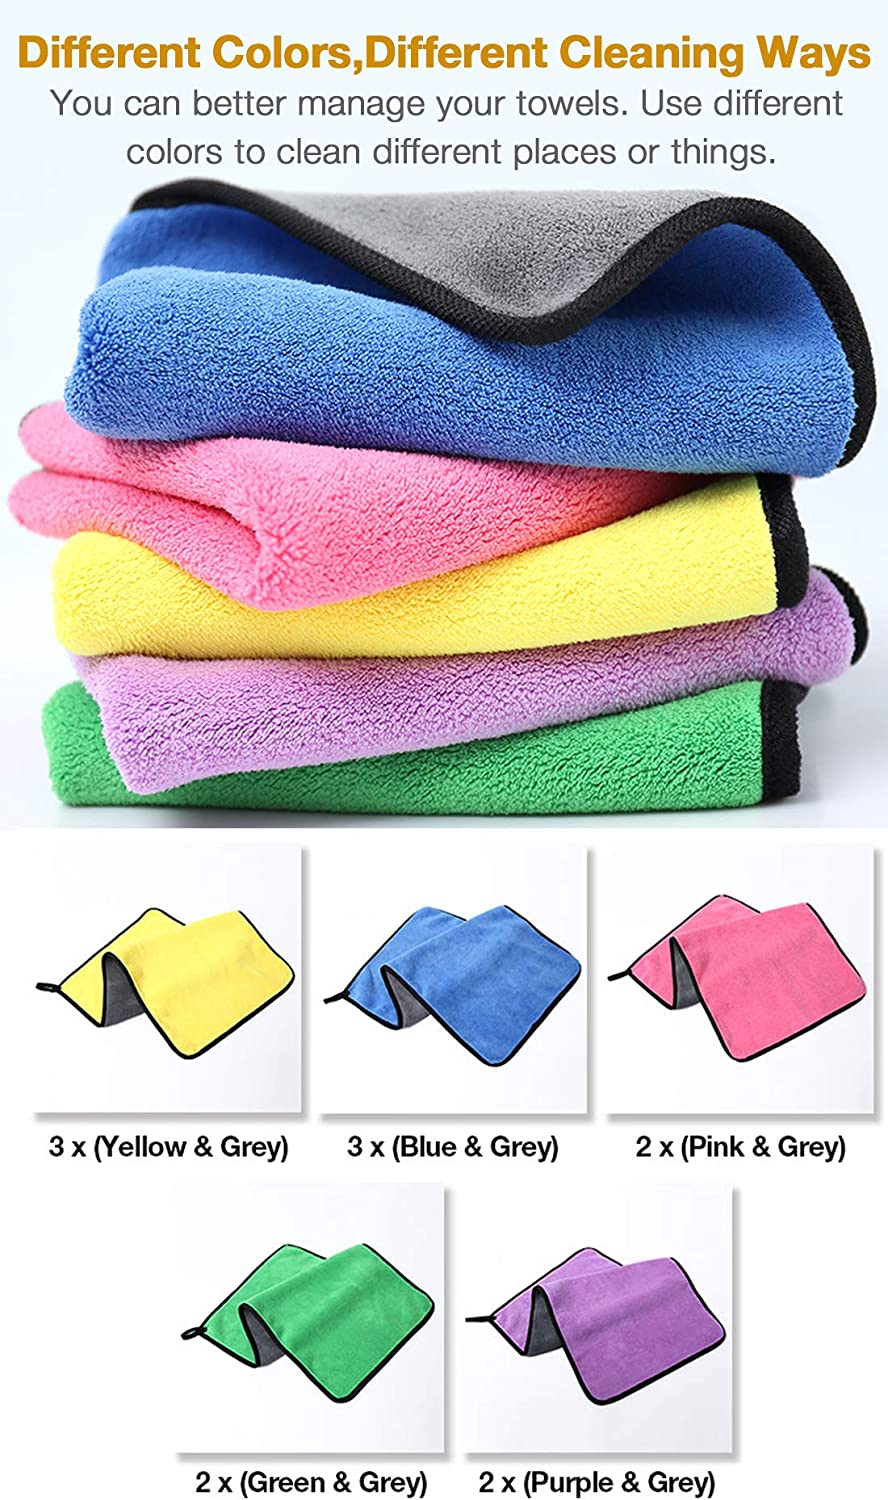 Trucks RVs GreatCool Car 24 x 12 Large Microfiber Cleaning Cloth Drying Towel Scratch-Free Lint Free Auto Wash Detailing for Cars SUVs Boats and Home Polishing Washing and Detailing -12 Pack